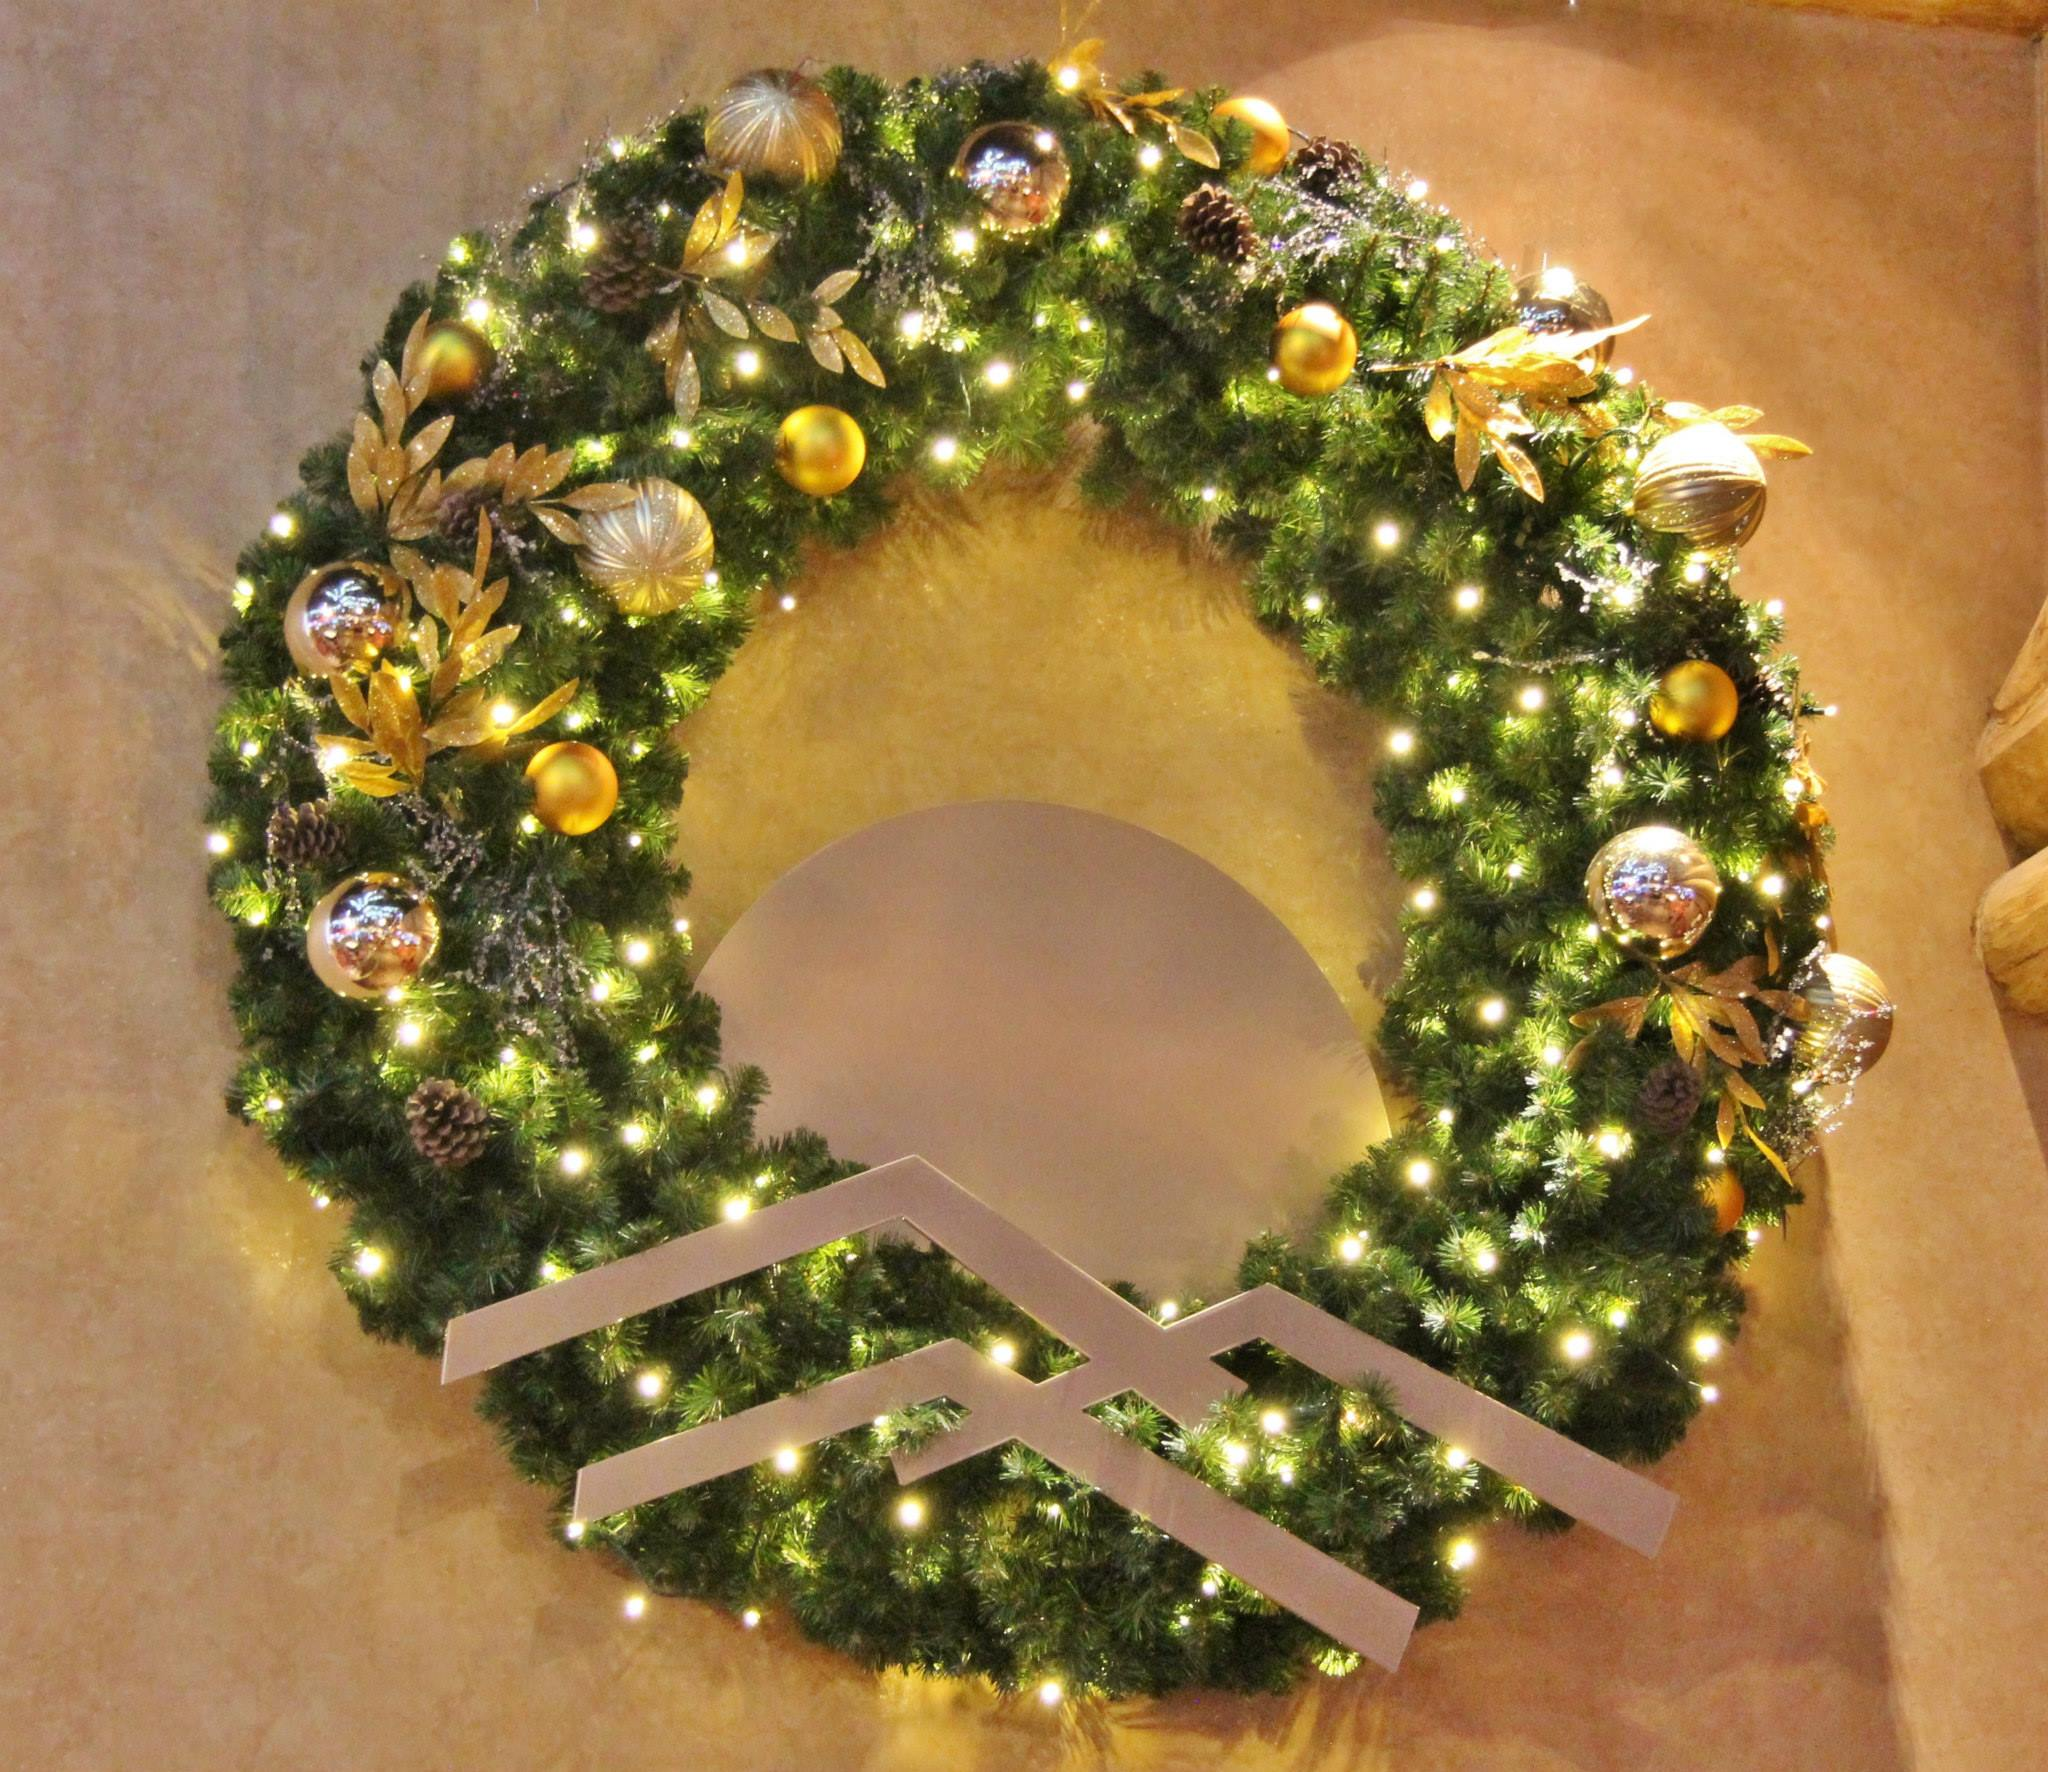 Commercial christmas decorations outdoor - Giant Commercial Christmas Wreath Large Custom Christmas Wreath